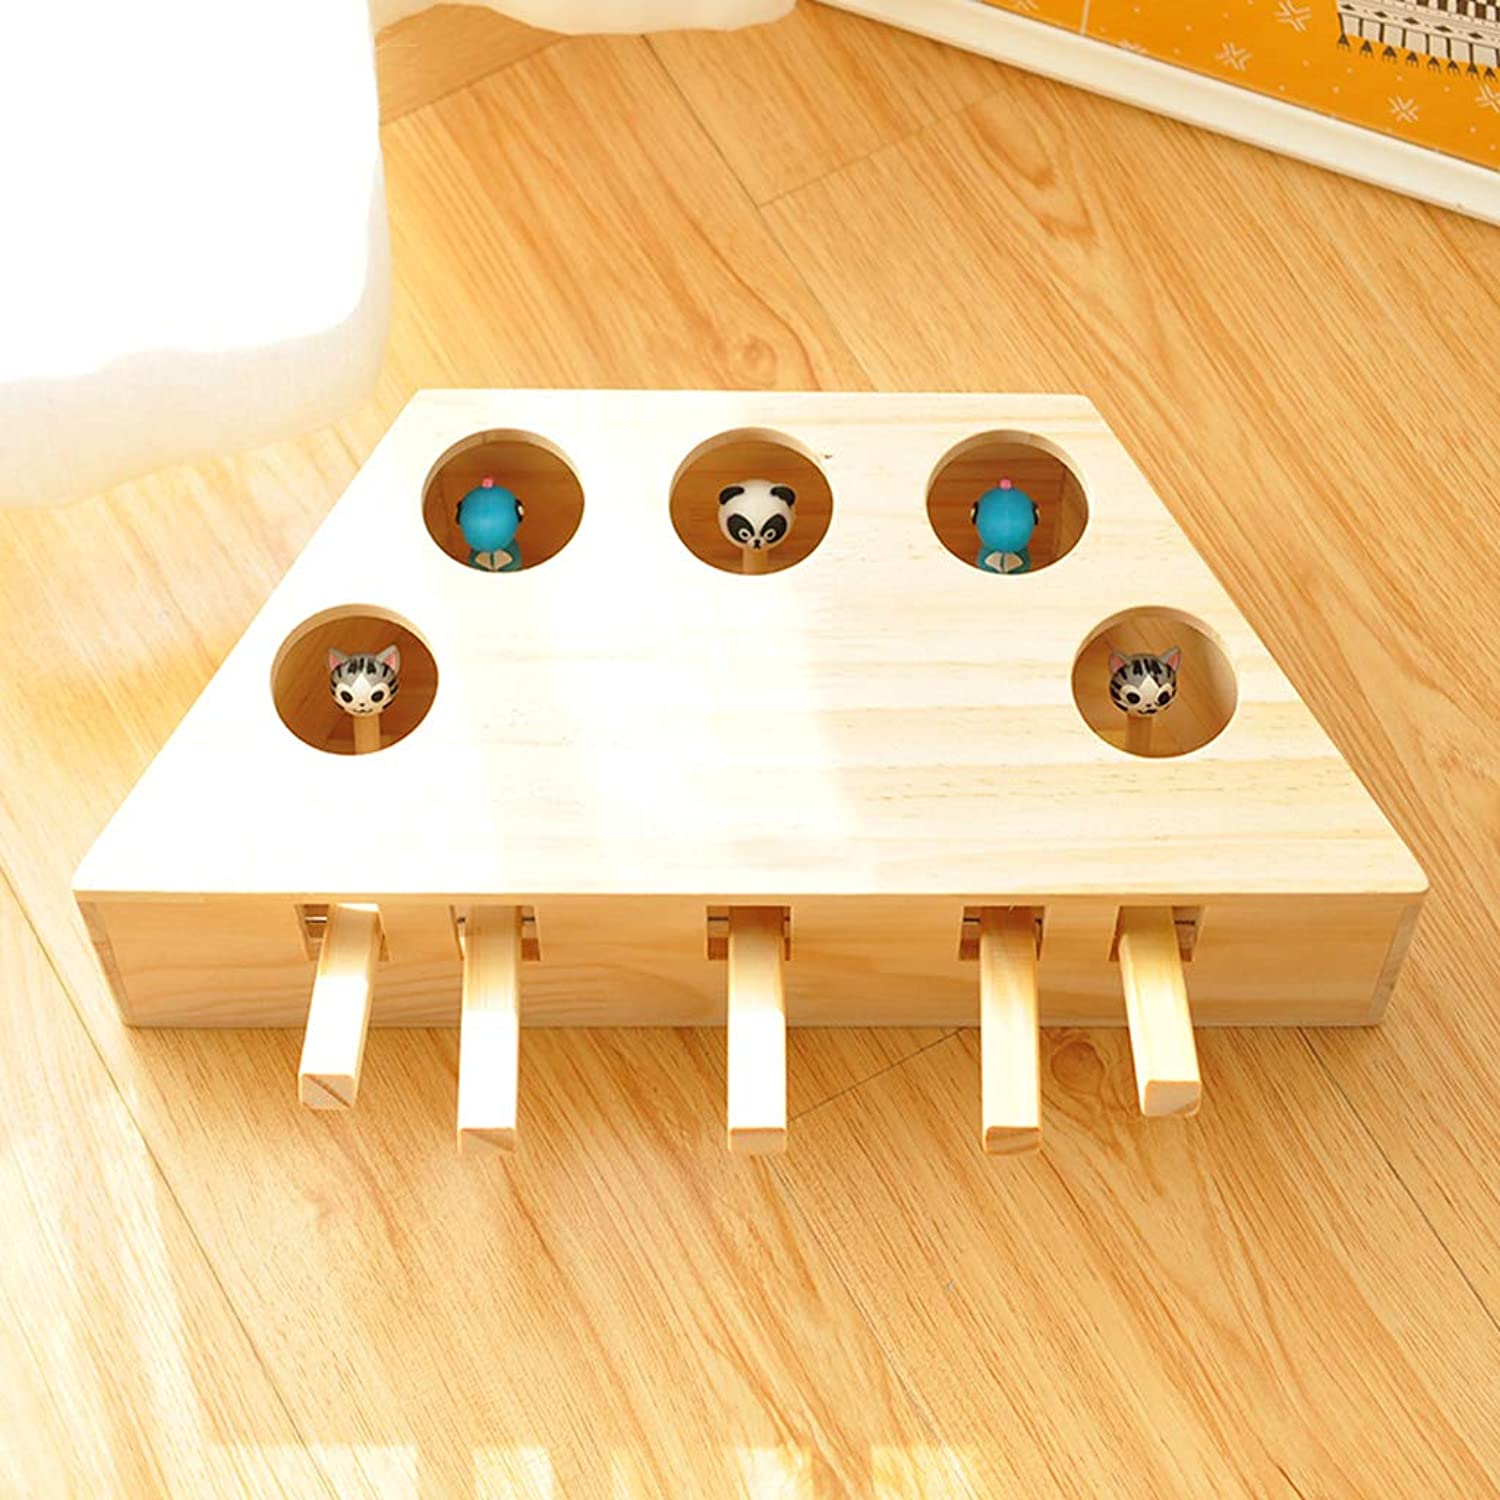 AB pet toy Interactive cat toys wooden educational toys funny cat cat supplies